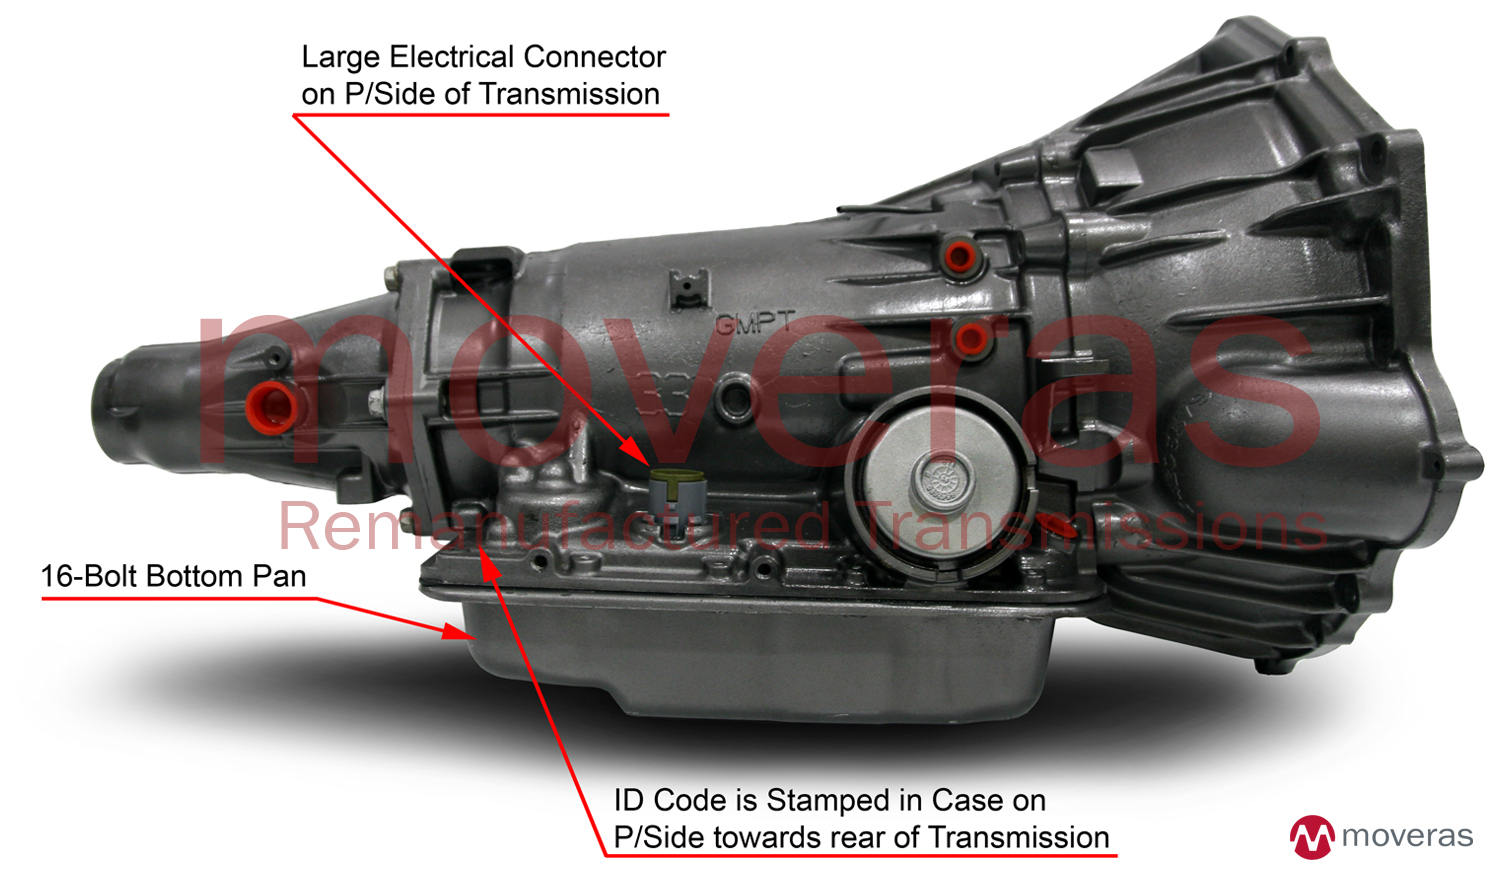 chevy s10 4wd wiring diagram with 36488 Need Help Identifying Transmission And Transfer Case on ShowAssembly in addition 1996 Chevrolet Blazer together with 89 4 3 Wont Start Figured Out 19205 likewise 4x4 engagment besides 1988 Chevrolet S10 Fuse Box Diagram.